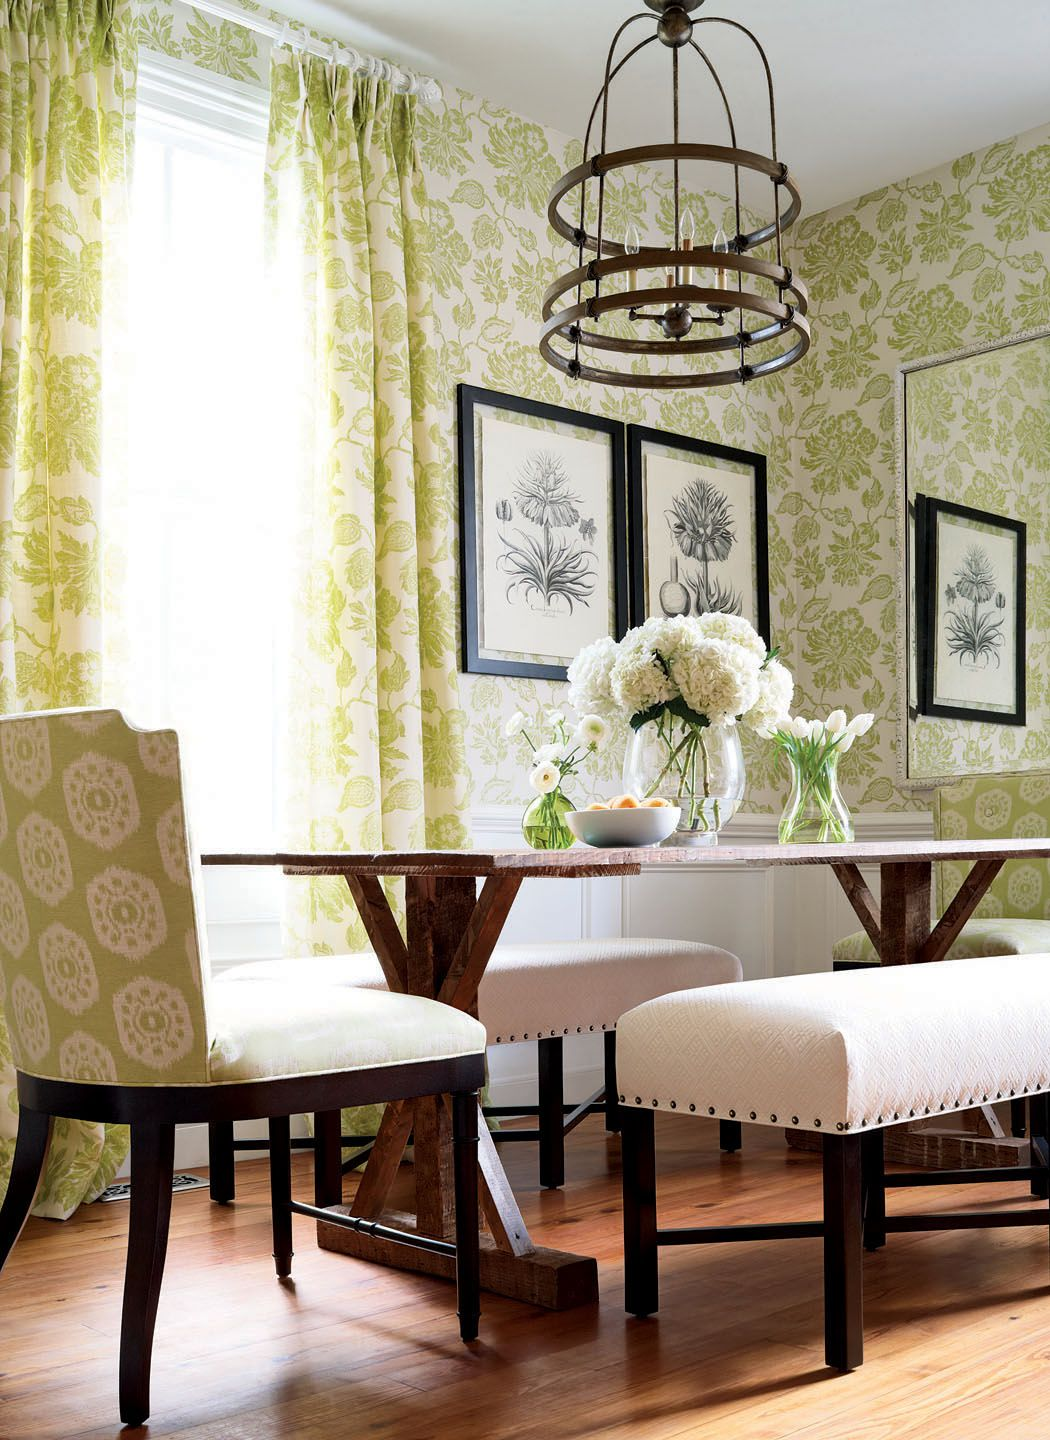 Helena wallpaper and fabric in lime green and Circle